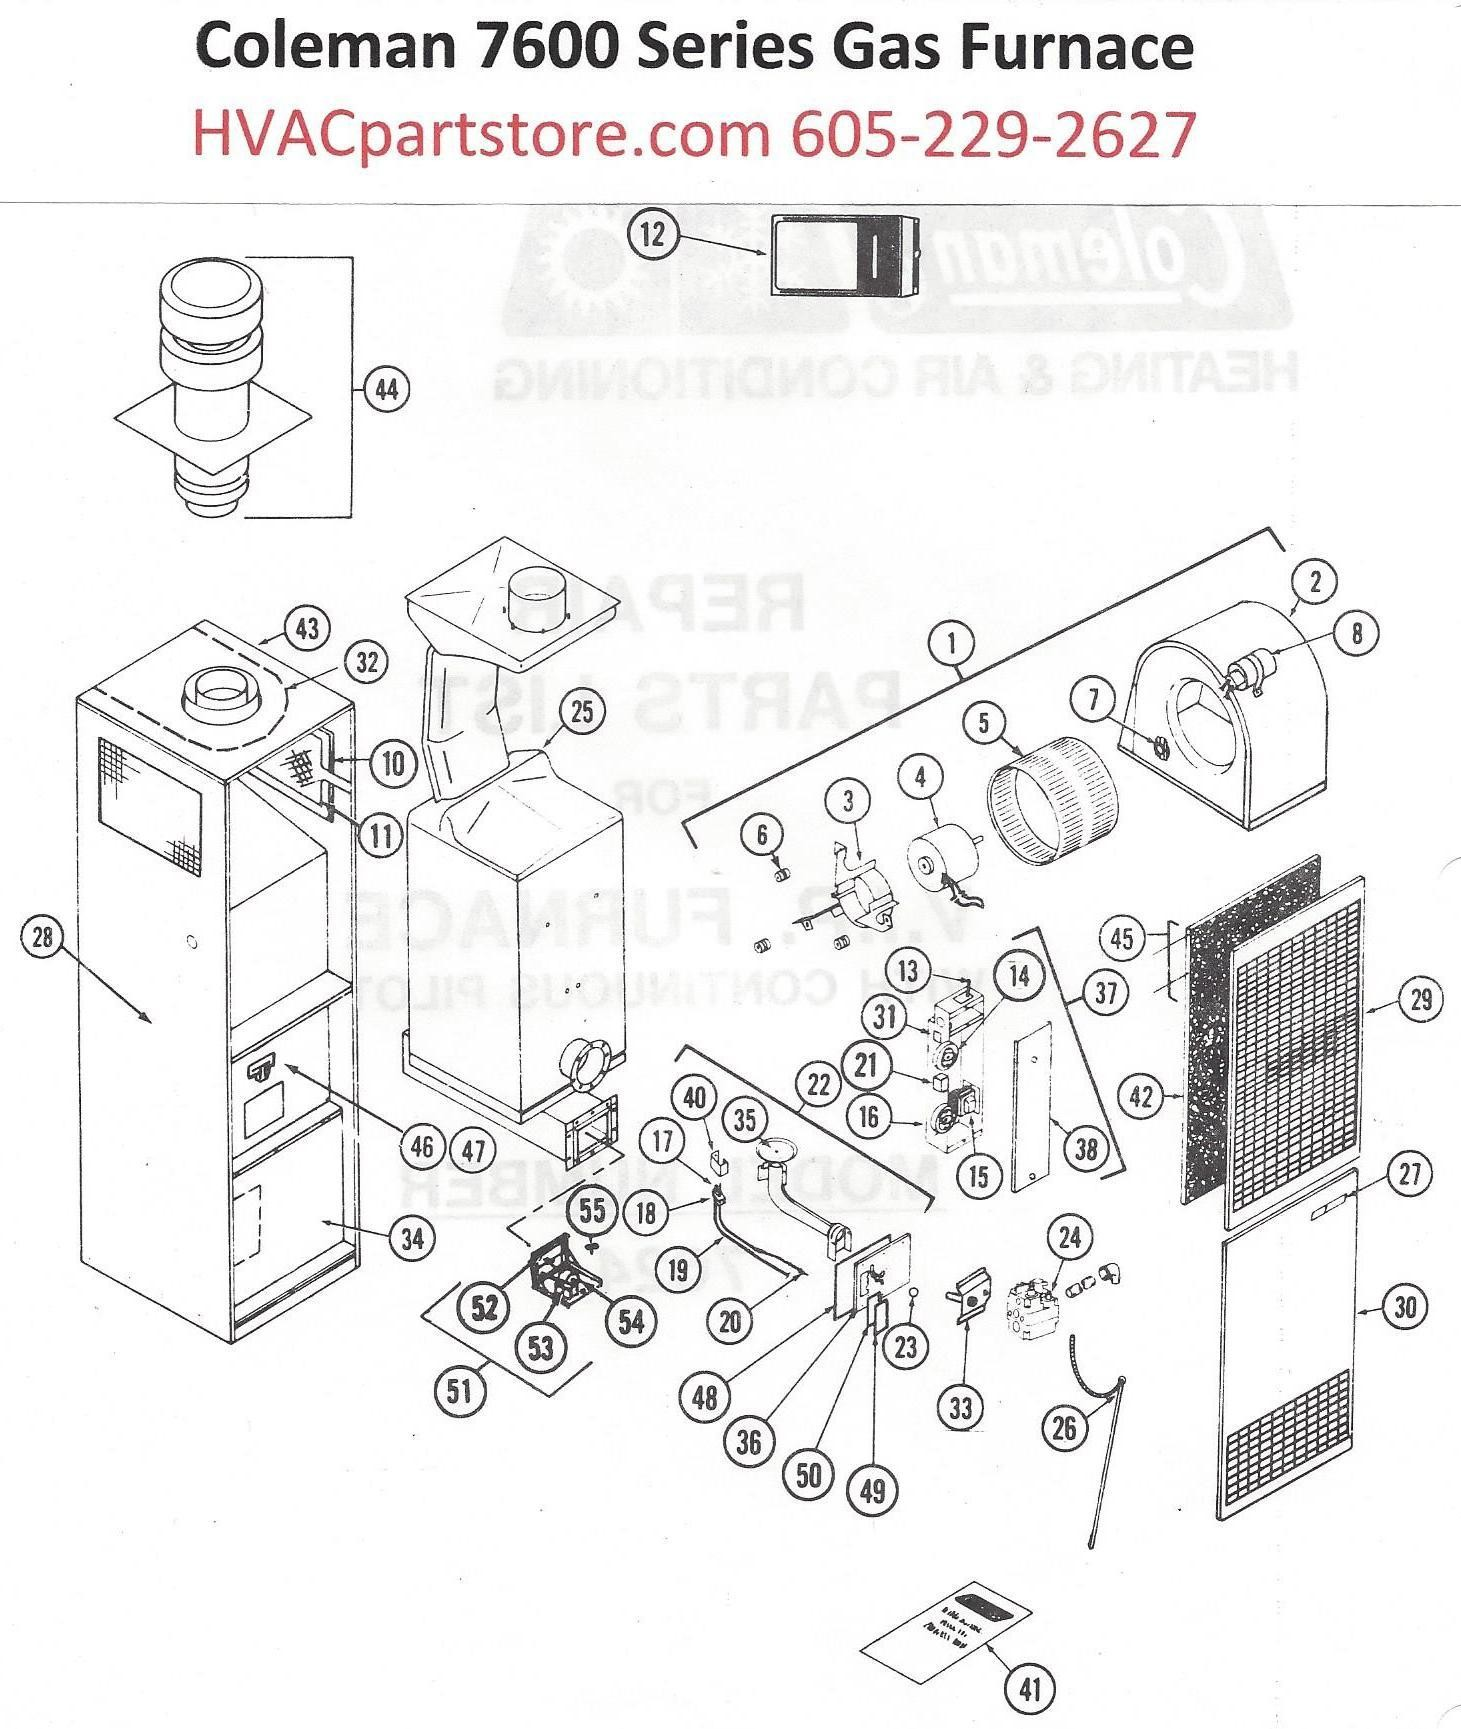 Coleman Stove Parts Diagram 7624 836 Coleman Gas Furnace Parts – Page 2 – Hvacpartstore Of Coleman Stove Parts Diagram